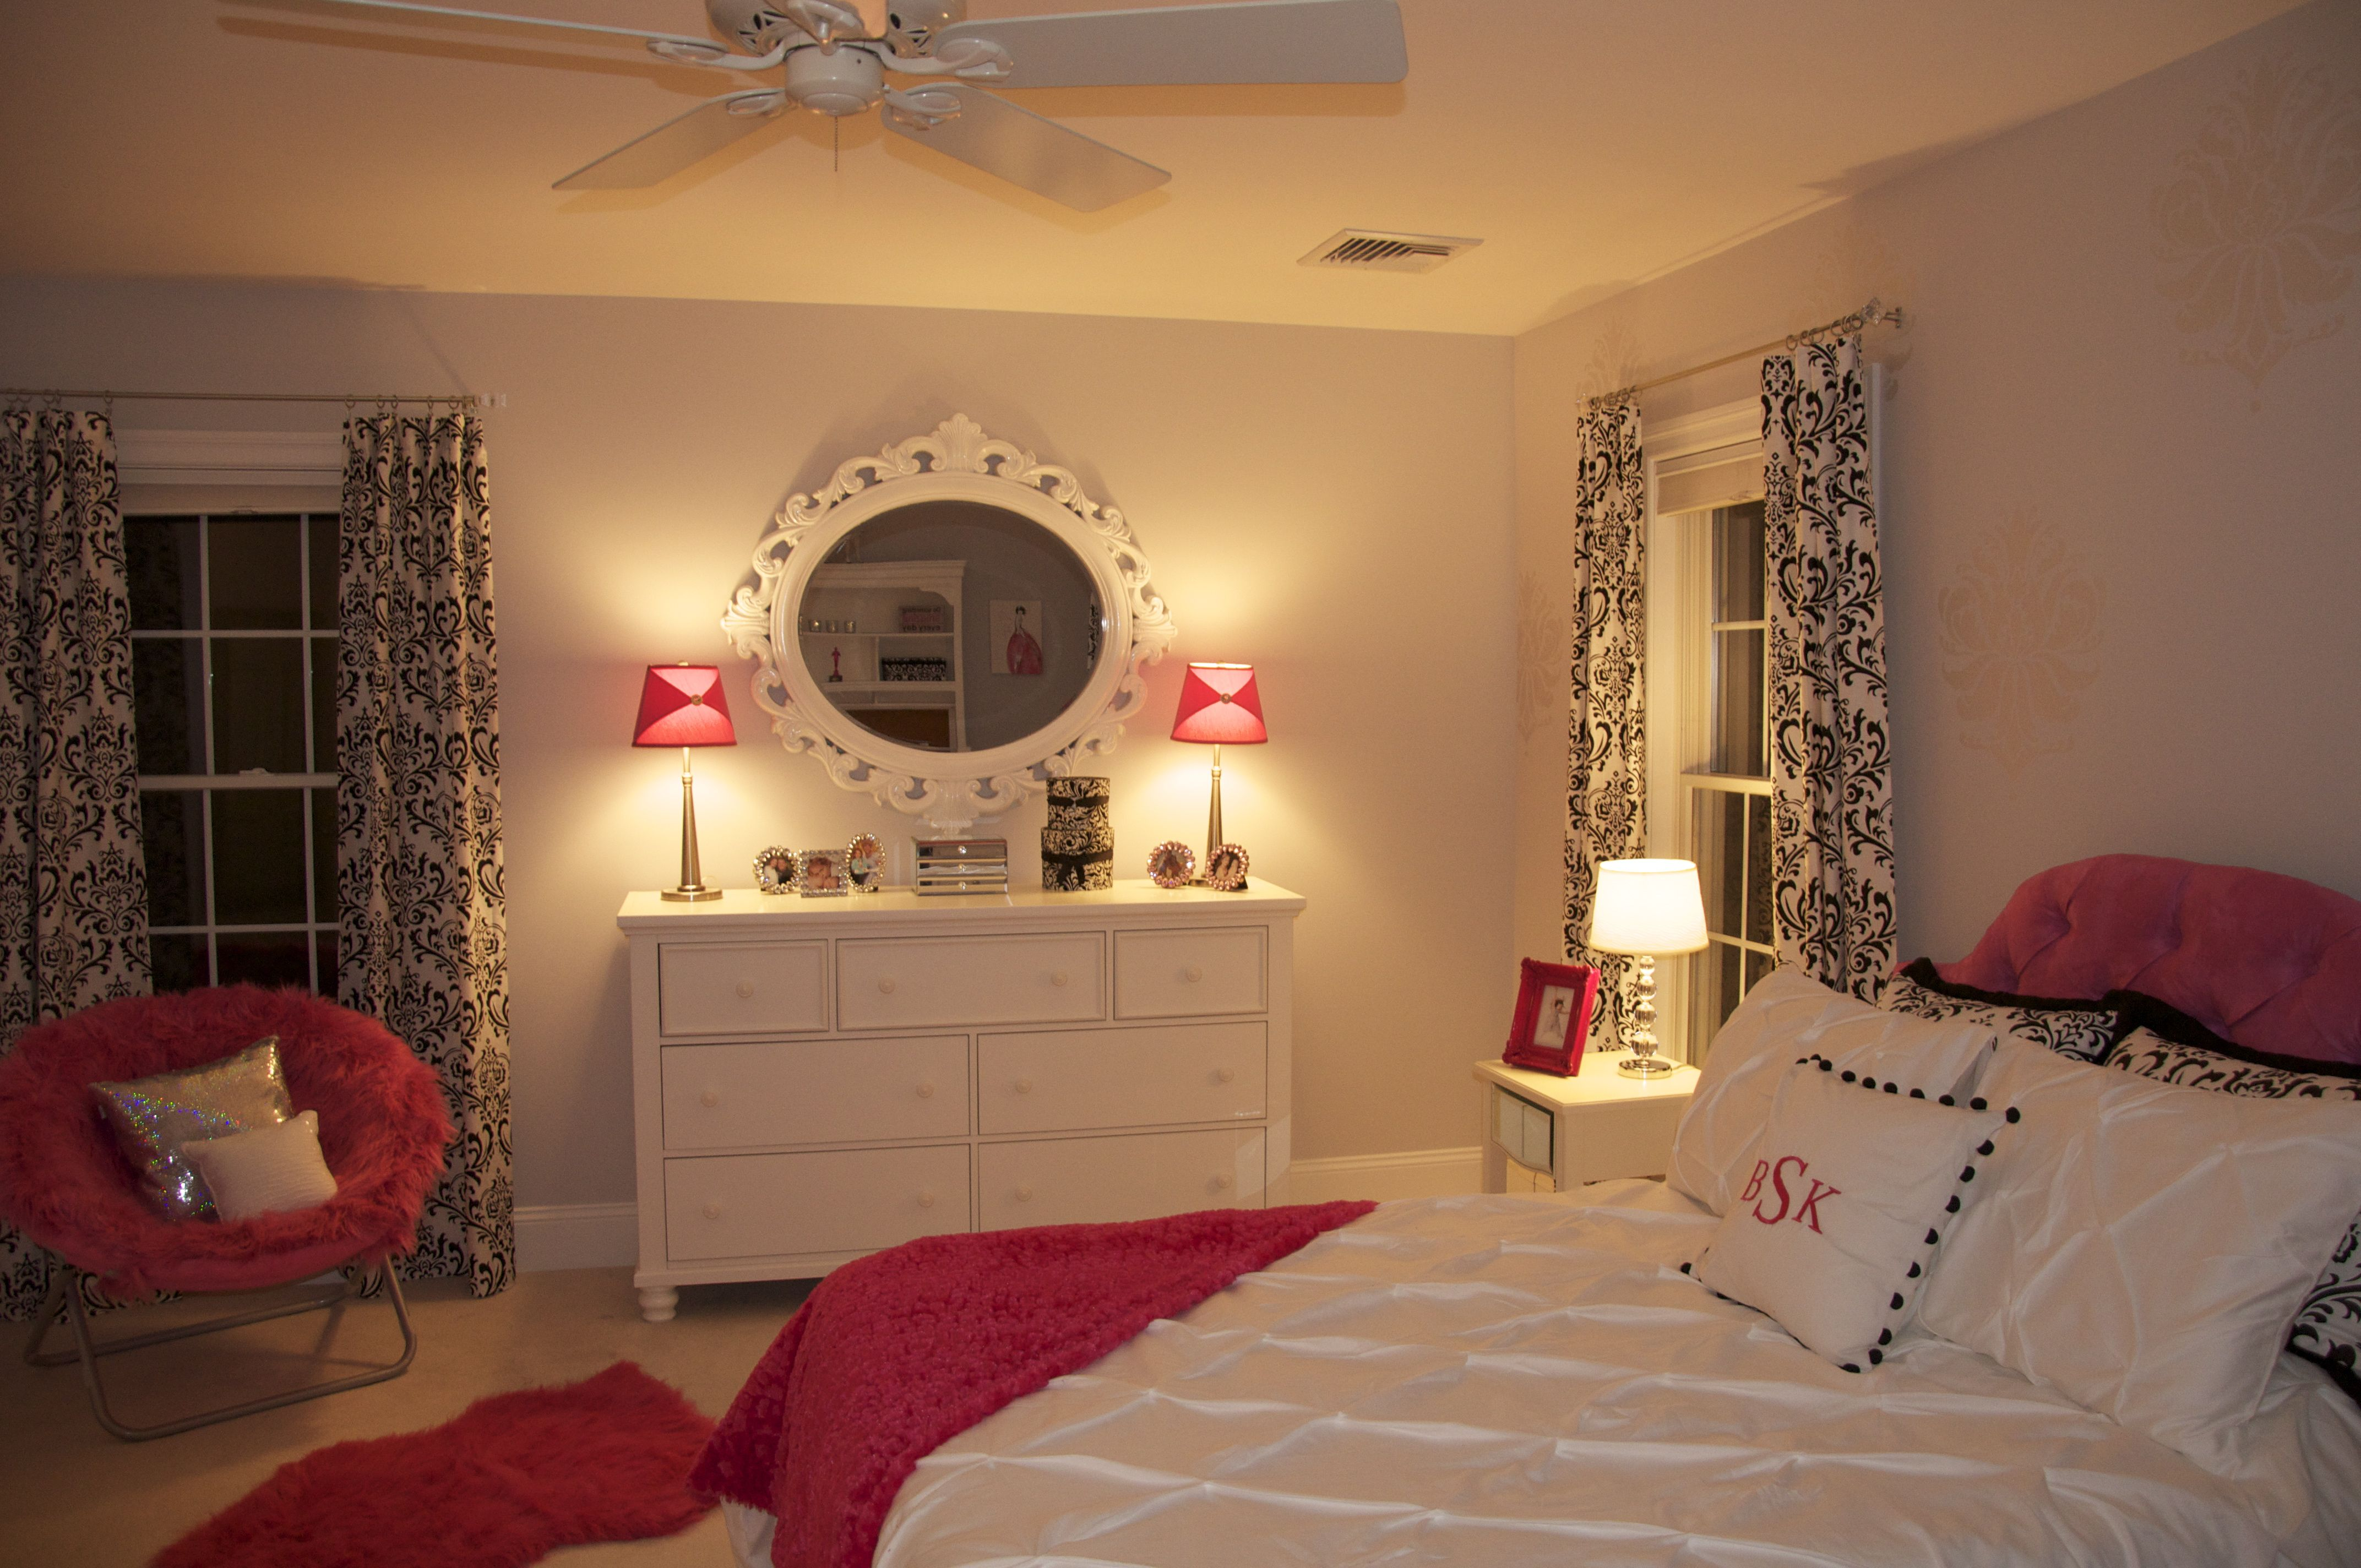 Pin By Danielle Stanton On Girls Room Luxurious Bedrooms Glam